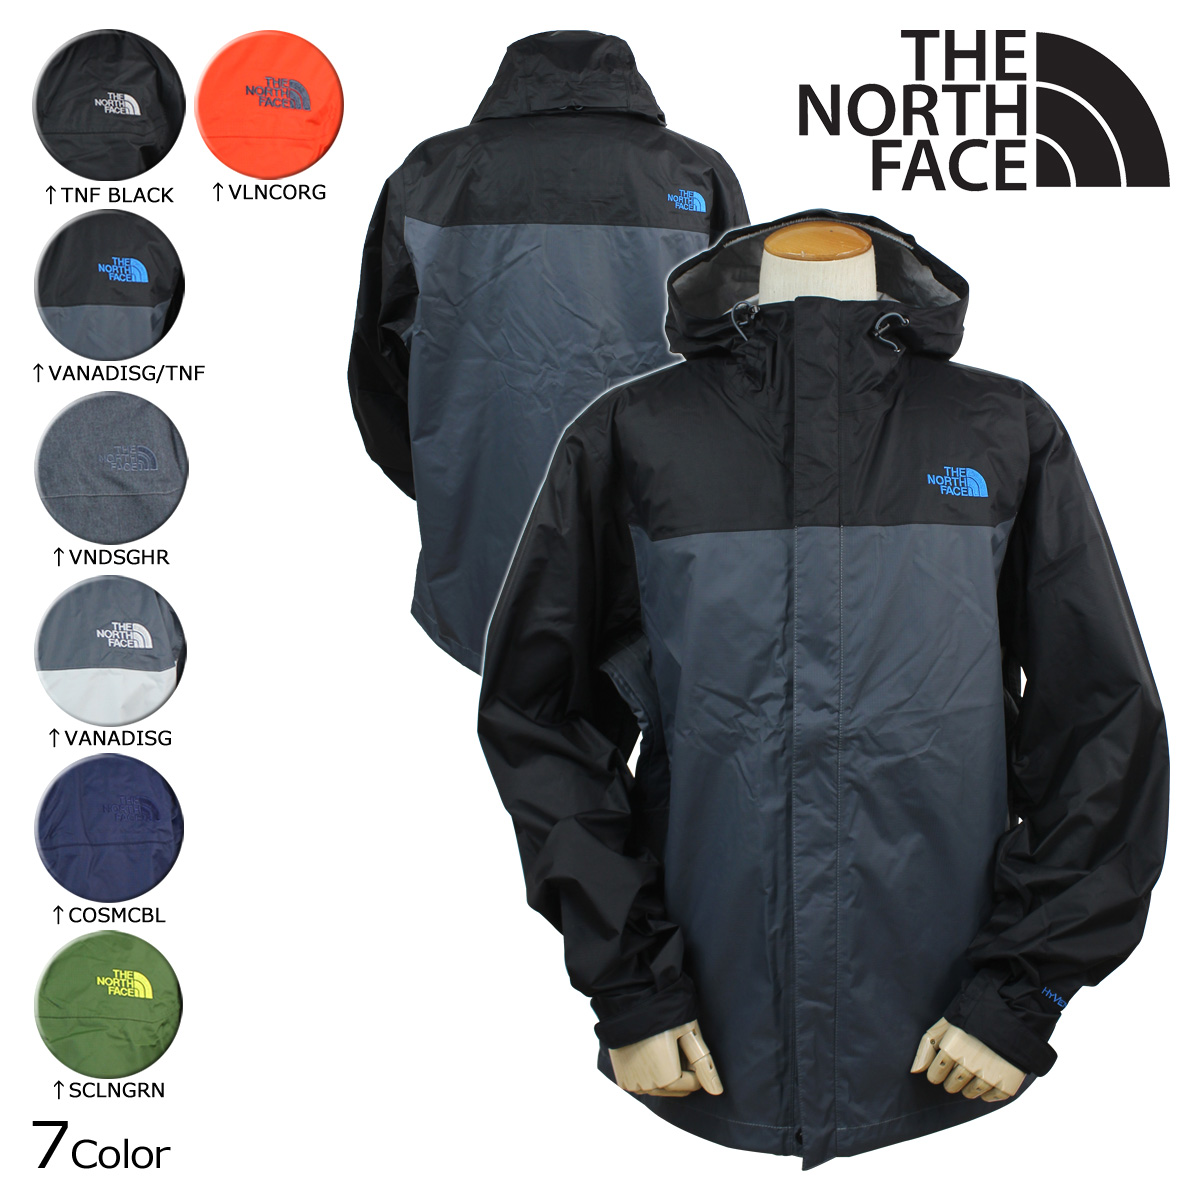 90ac17ab6 The north face THE NORTH FACE nylon jacket mens jacket waterproof 2014, new  A8AR8 color MEN's VENTURE JACKET [10 / 11 new stock] [regular]